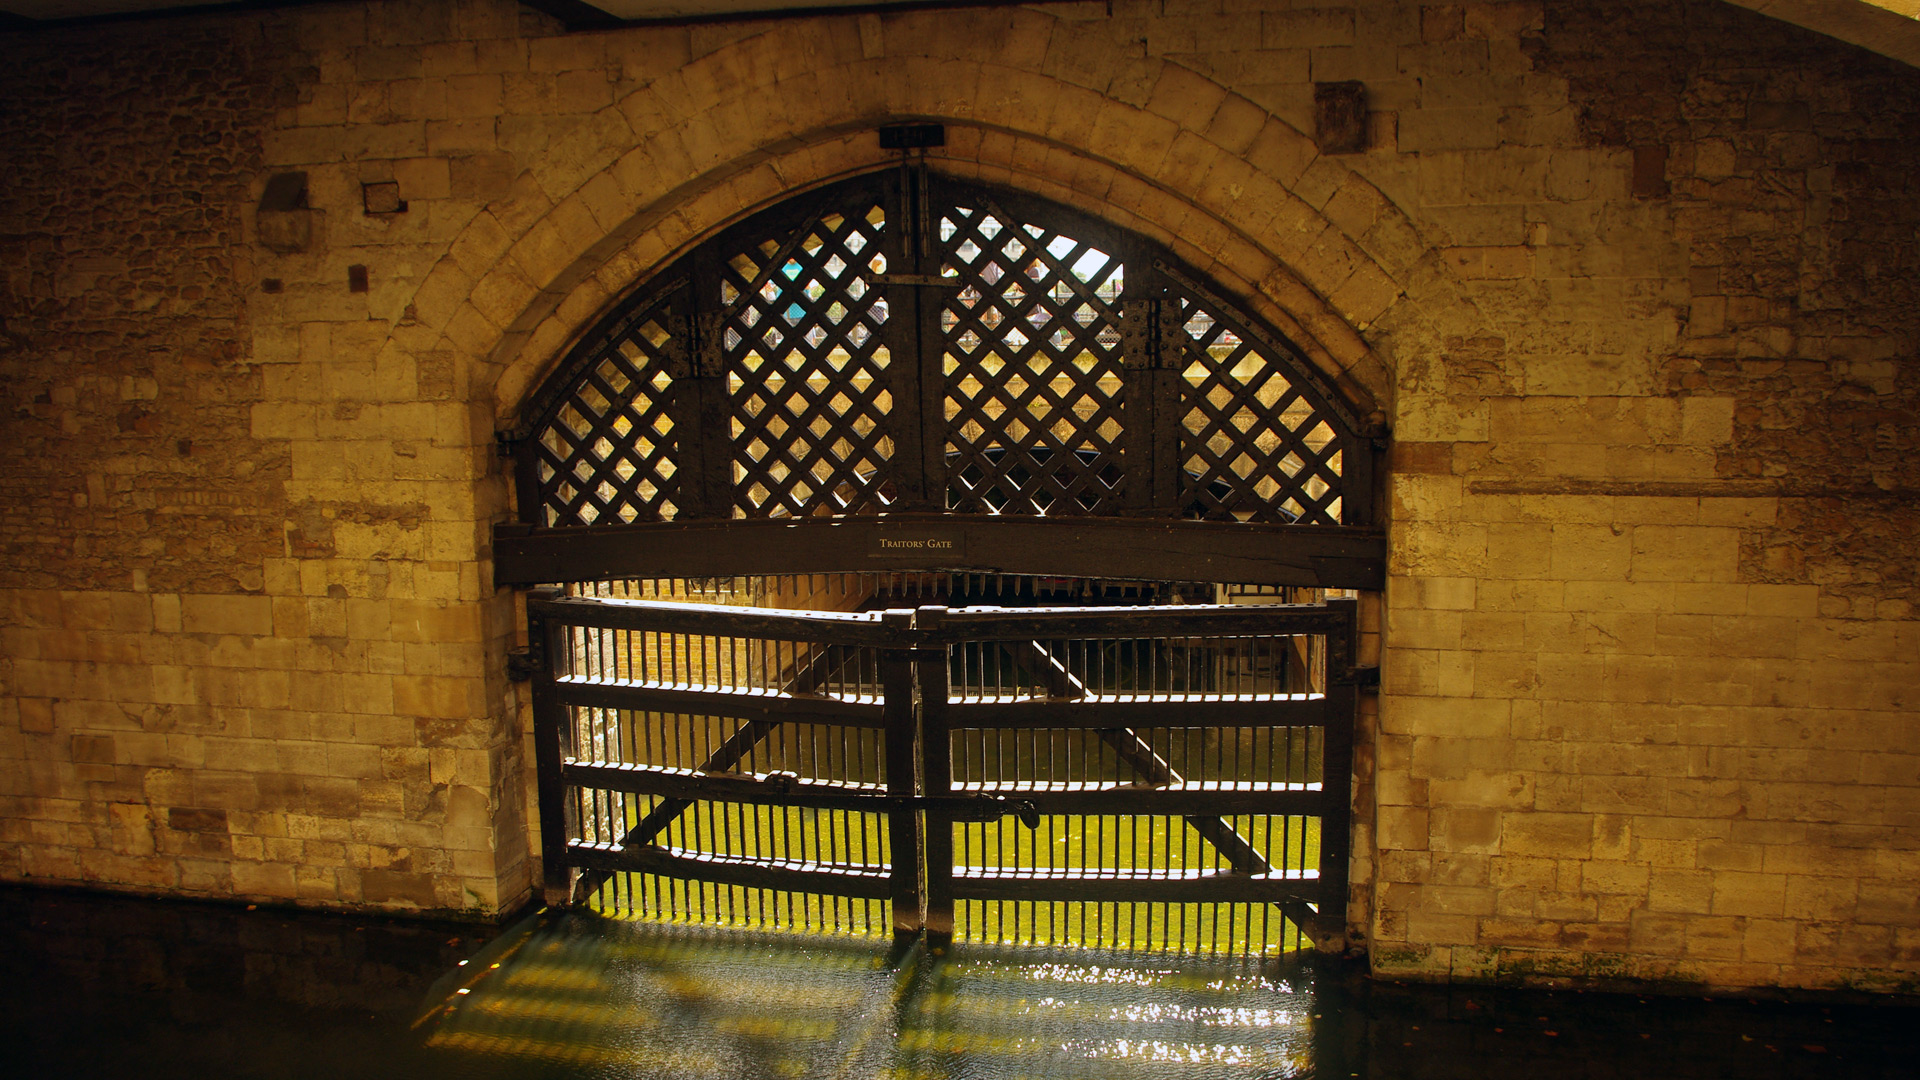 Traitors' Gate - Tower of London